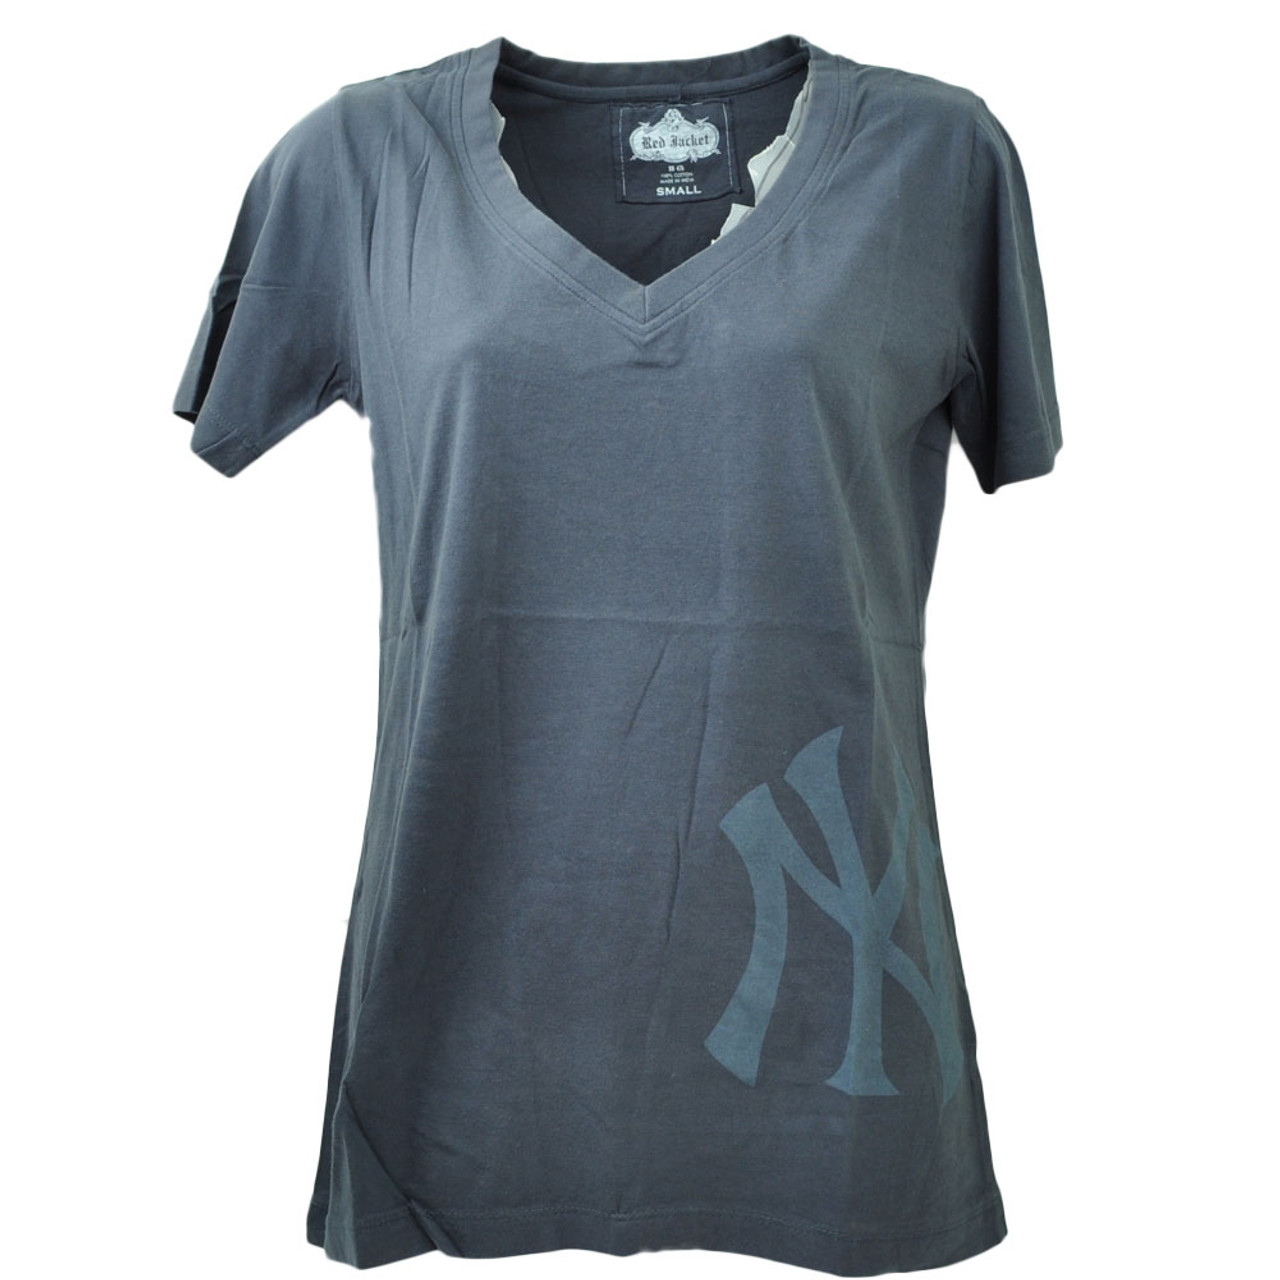 c8cb8d885 Red Jacket New York Yankees Distressed Tshirt Tee Small Navy Blue Womens V  Neck - Cap Store Online.com